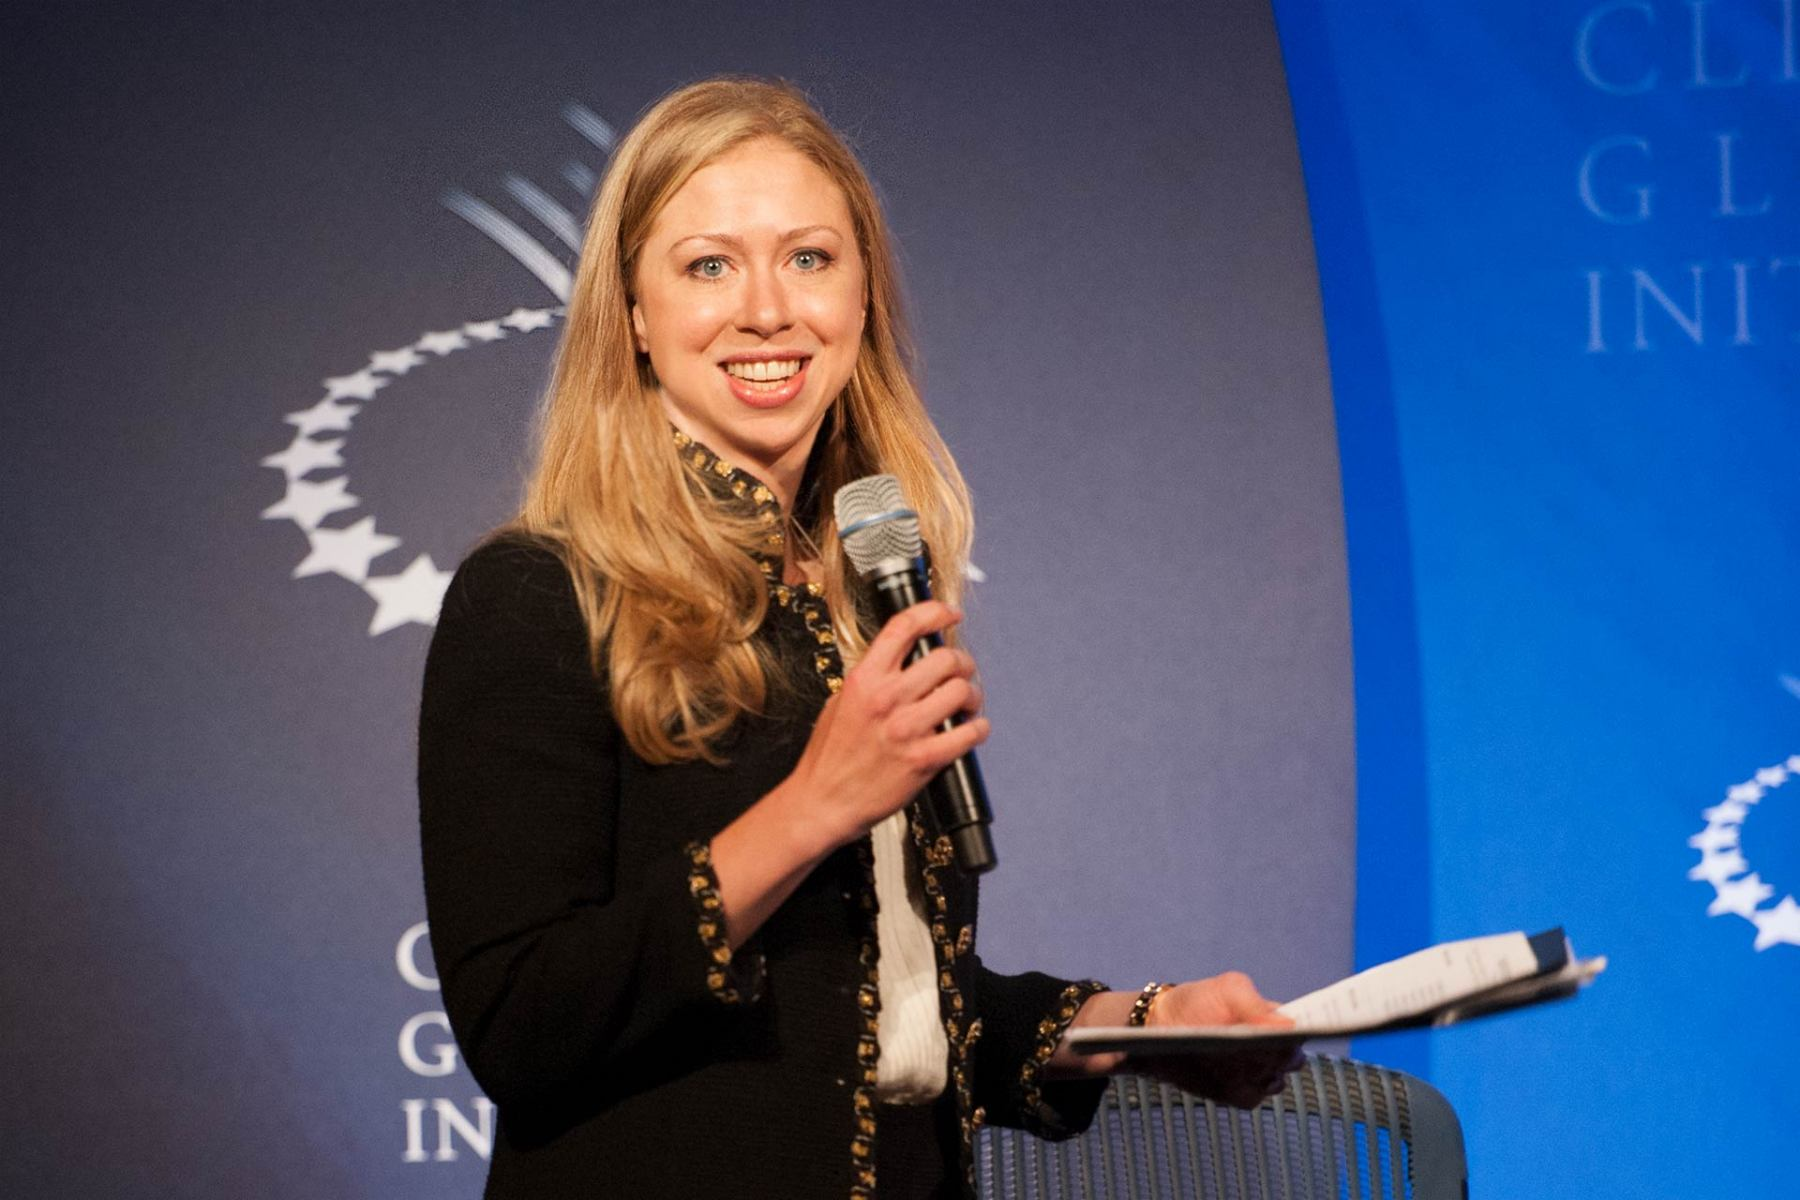 Designing Technologies for Economic Empowerment , Chelsea Clinton, Toshi Nakamura, Geena Davis, Founder, Ángel Cabrera, Neil Bellefeuille, Clinton Global Initiative, CGI 2011, New York City, 09-22-2011